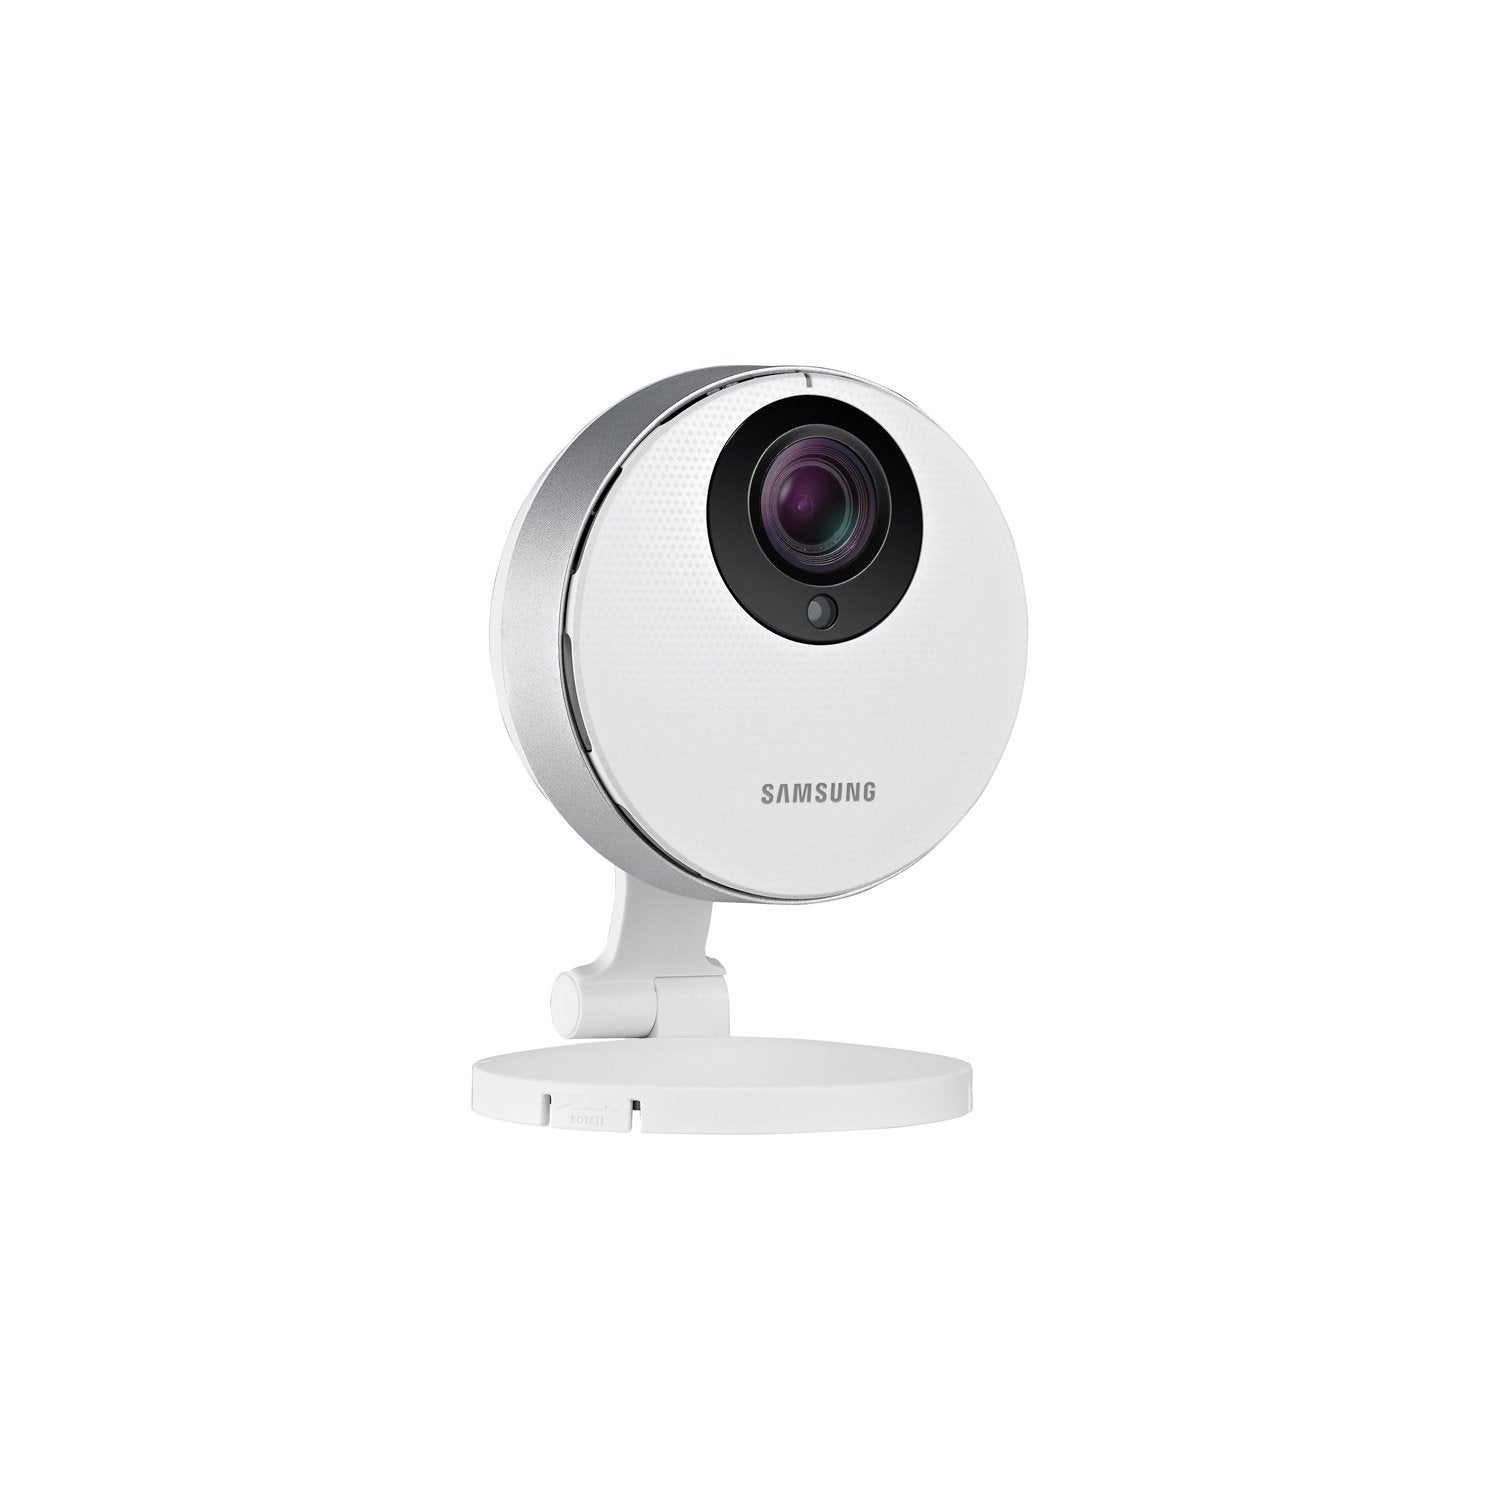 Cam ra connect e smartcam full hd samsung leroy merlin - Connect leroymerlin fr ...